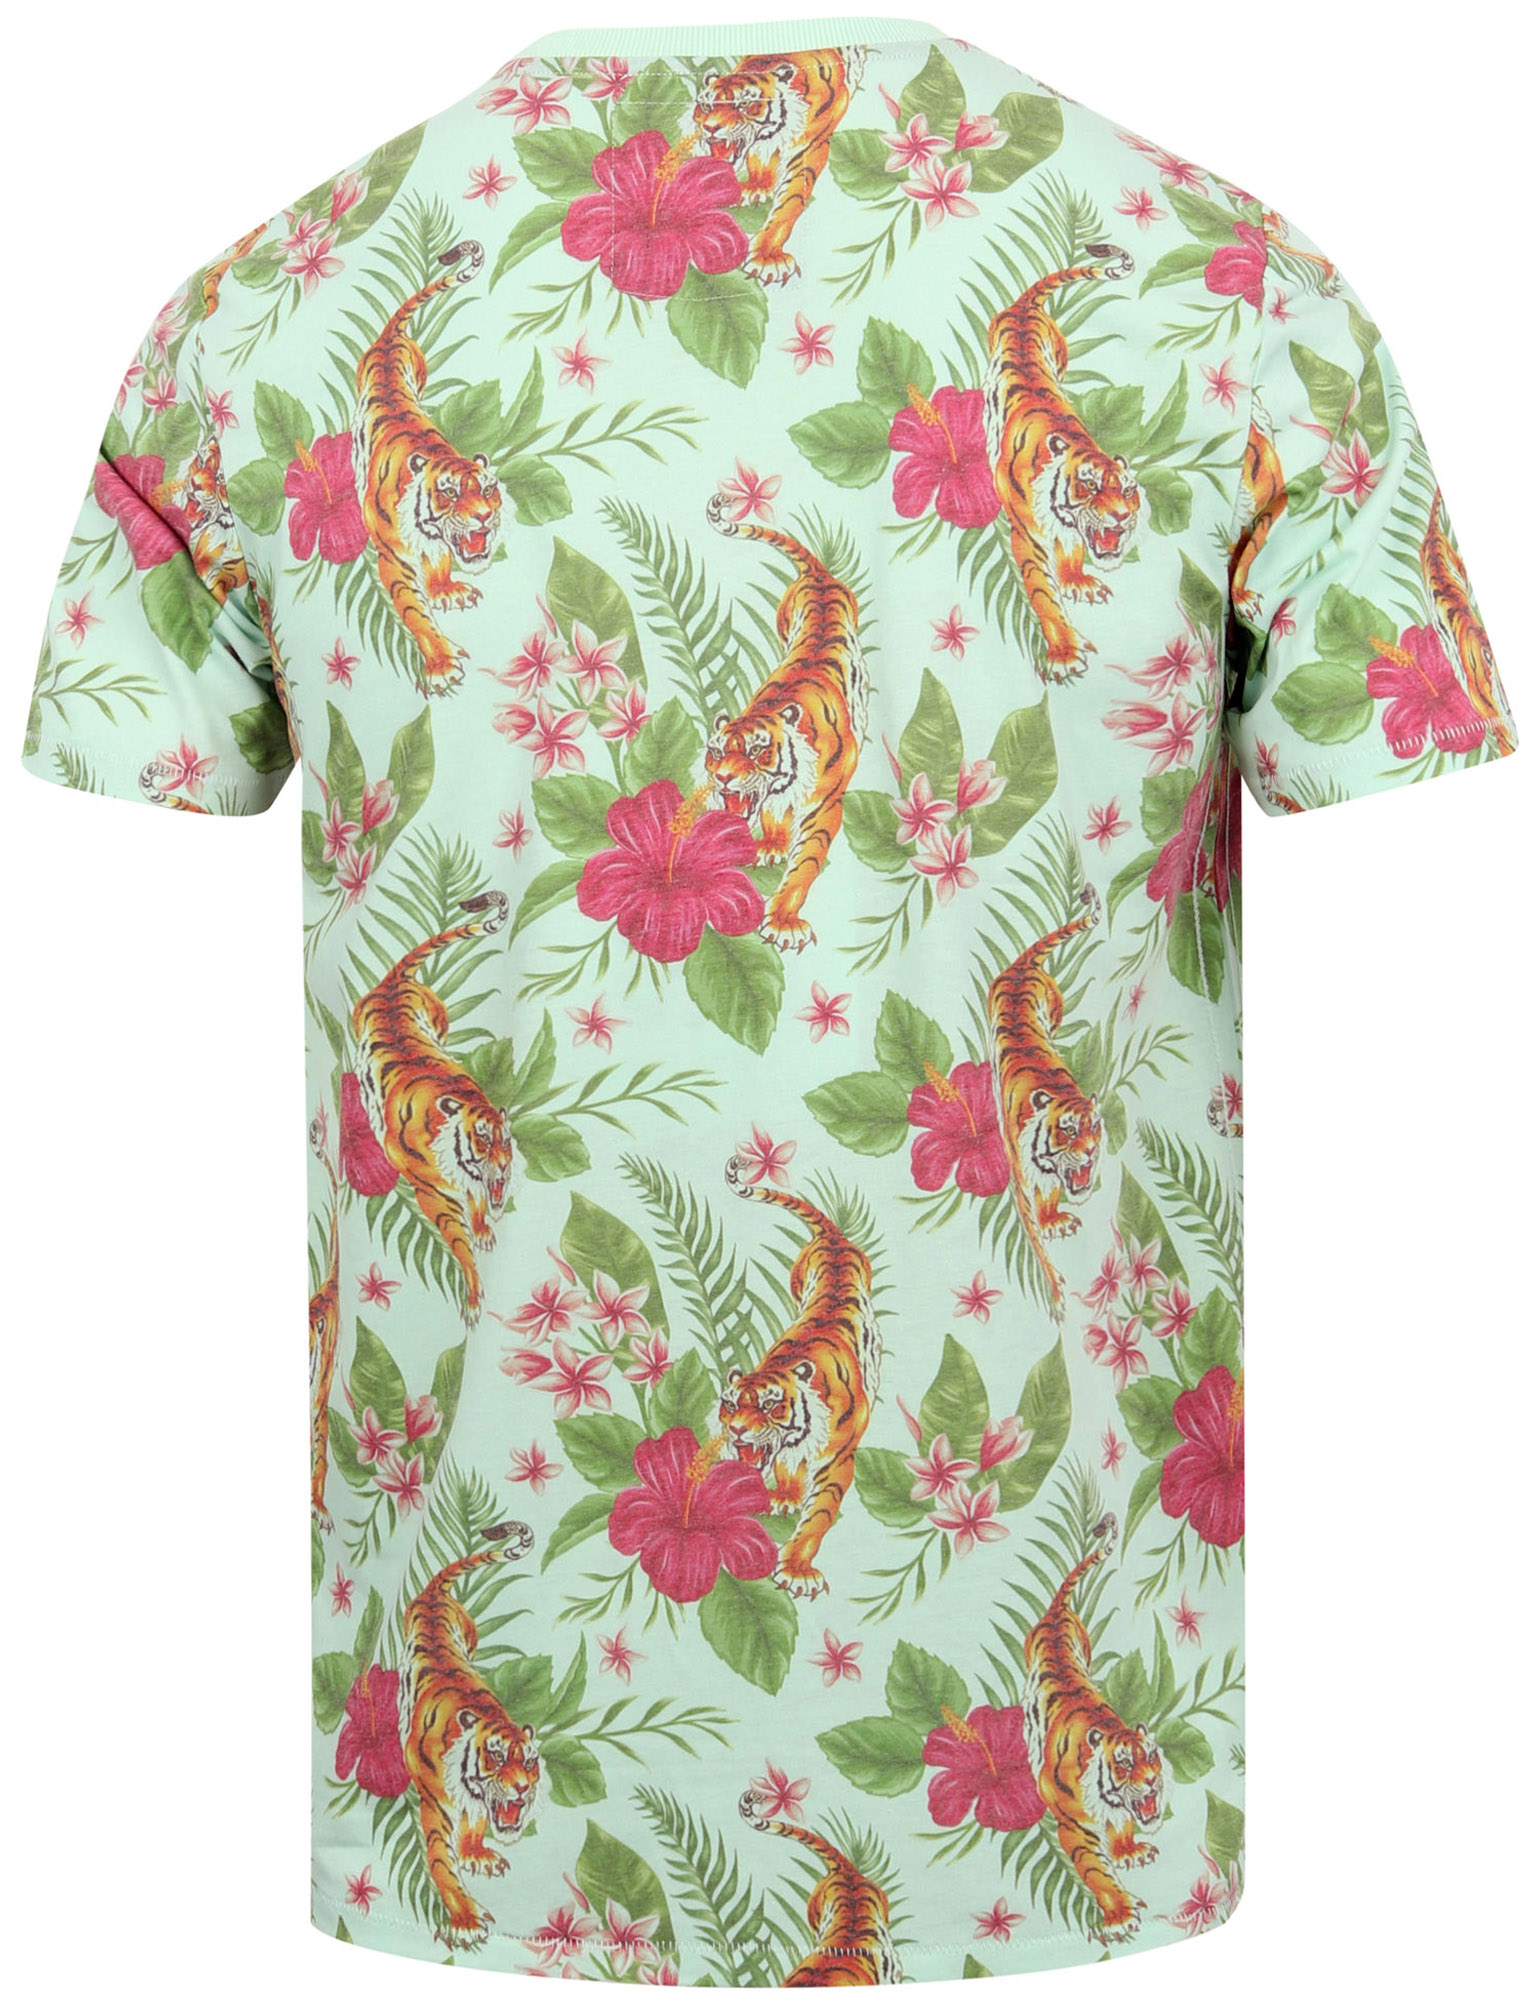 Tokyo-Laundry-Tropical-Print-Crew-Neck-T-Shirt-Hawaiian-Floral-Summer-Holiday thumbnail 21